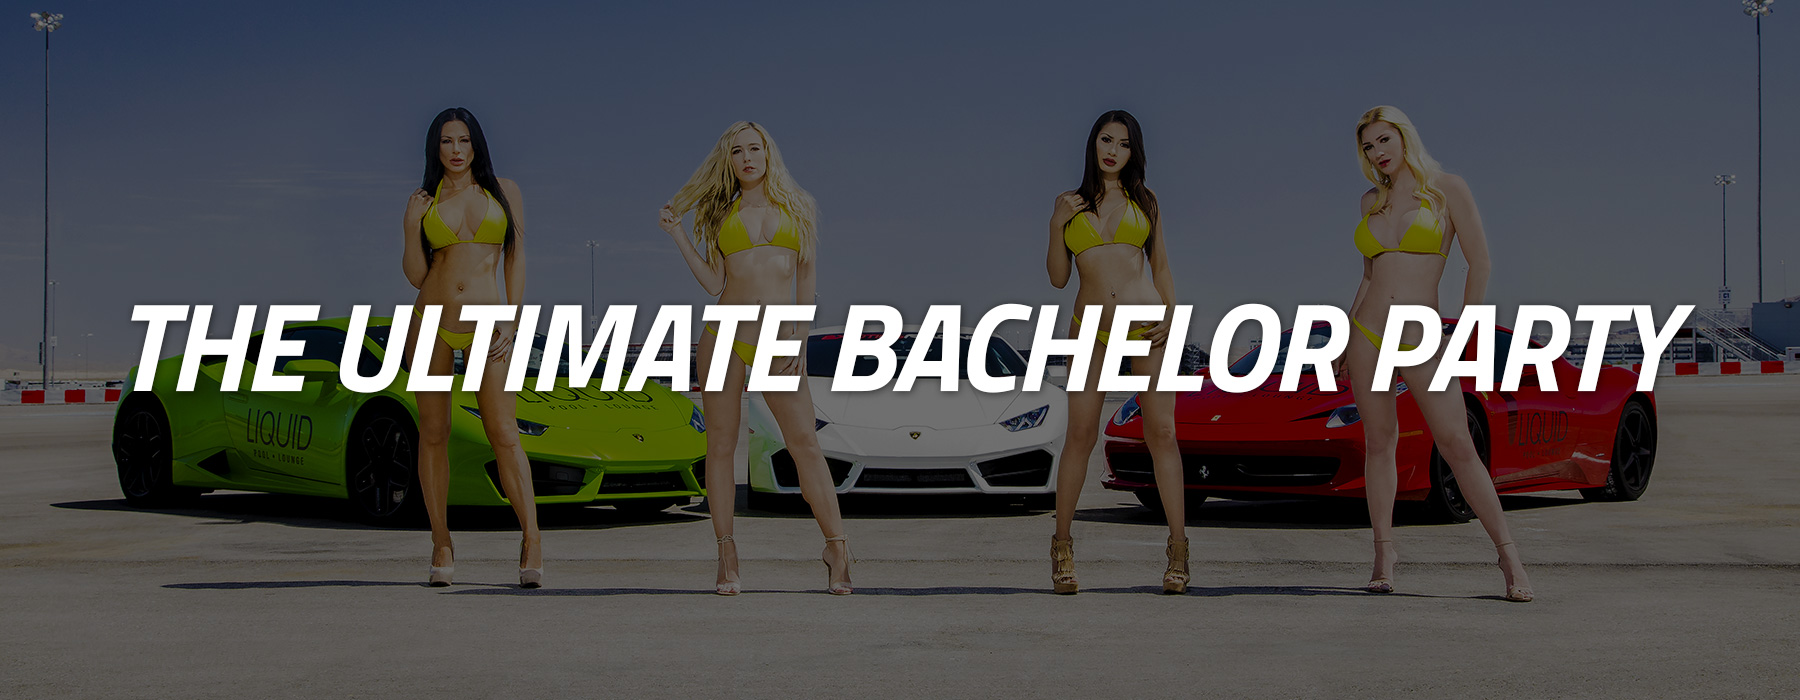 The Ultimate Bachelor Party